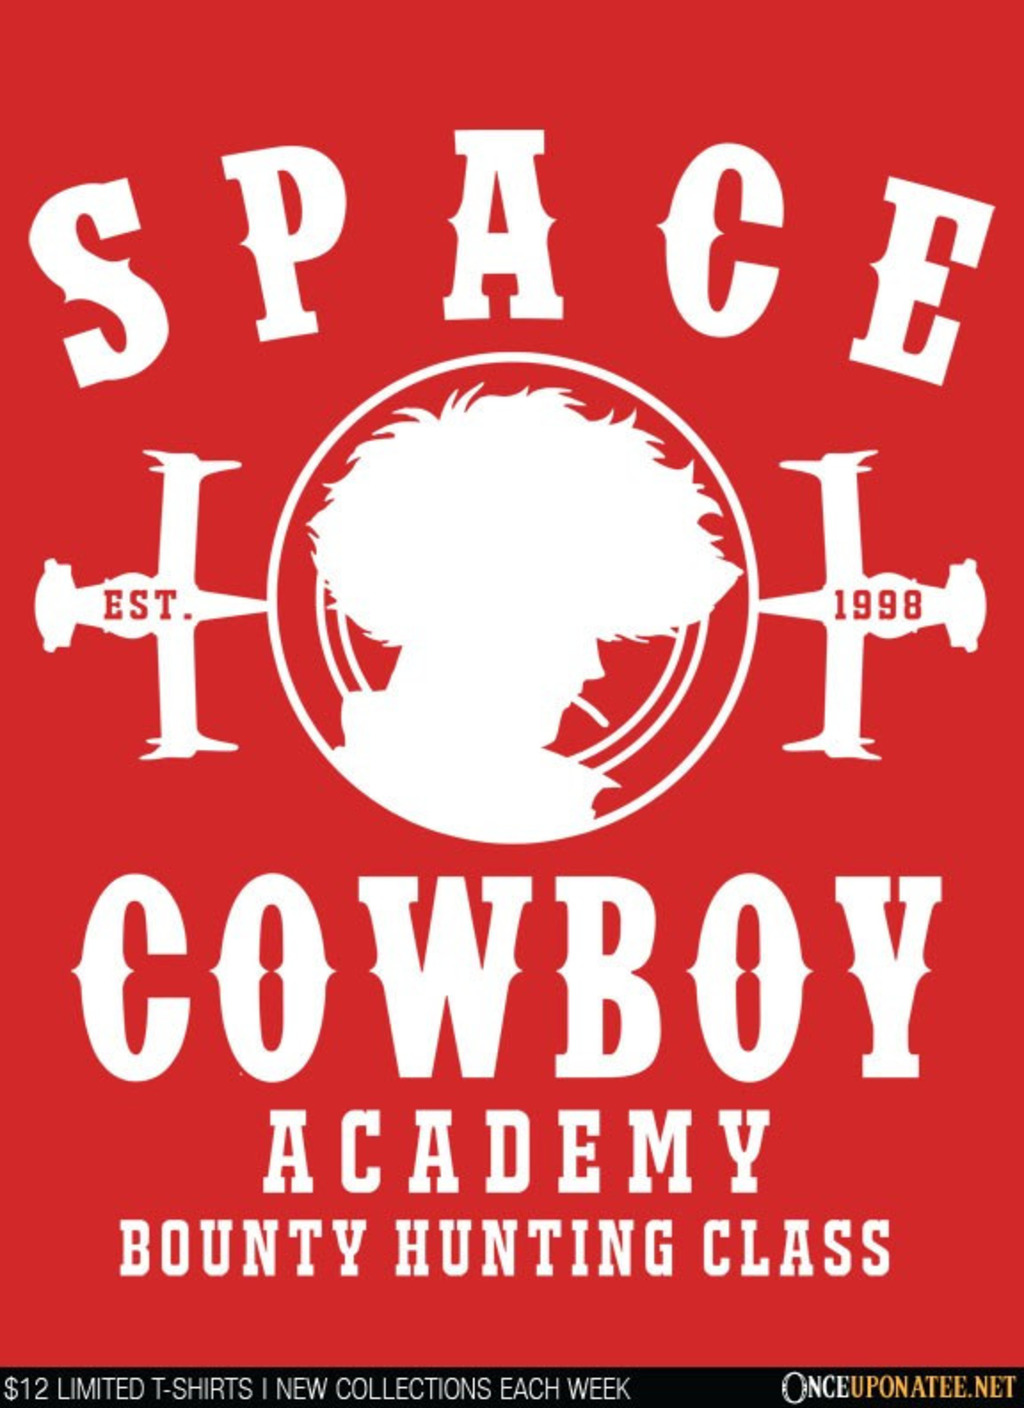 Once Upon a Tee: Space Cowboy Academy